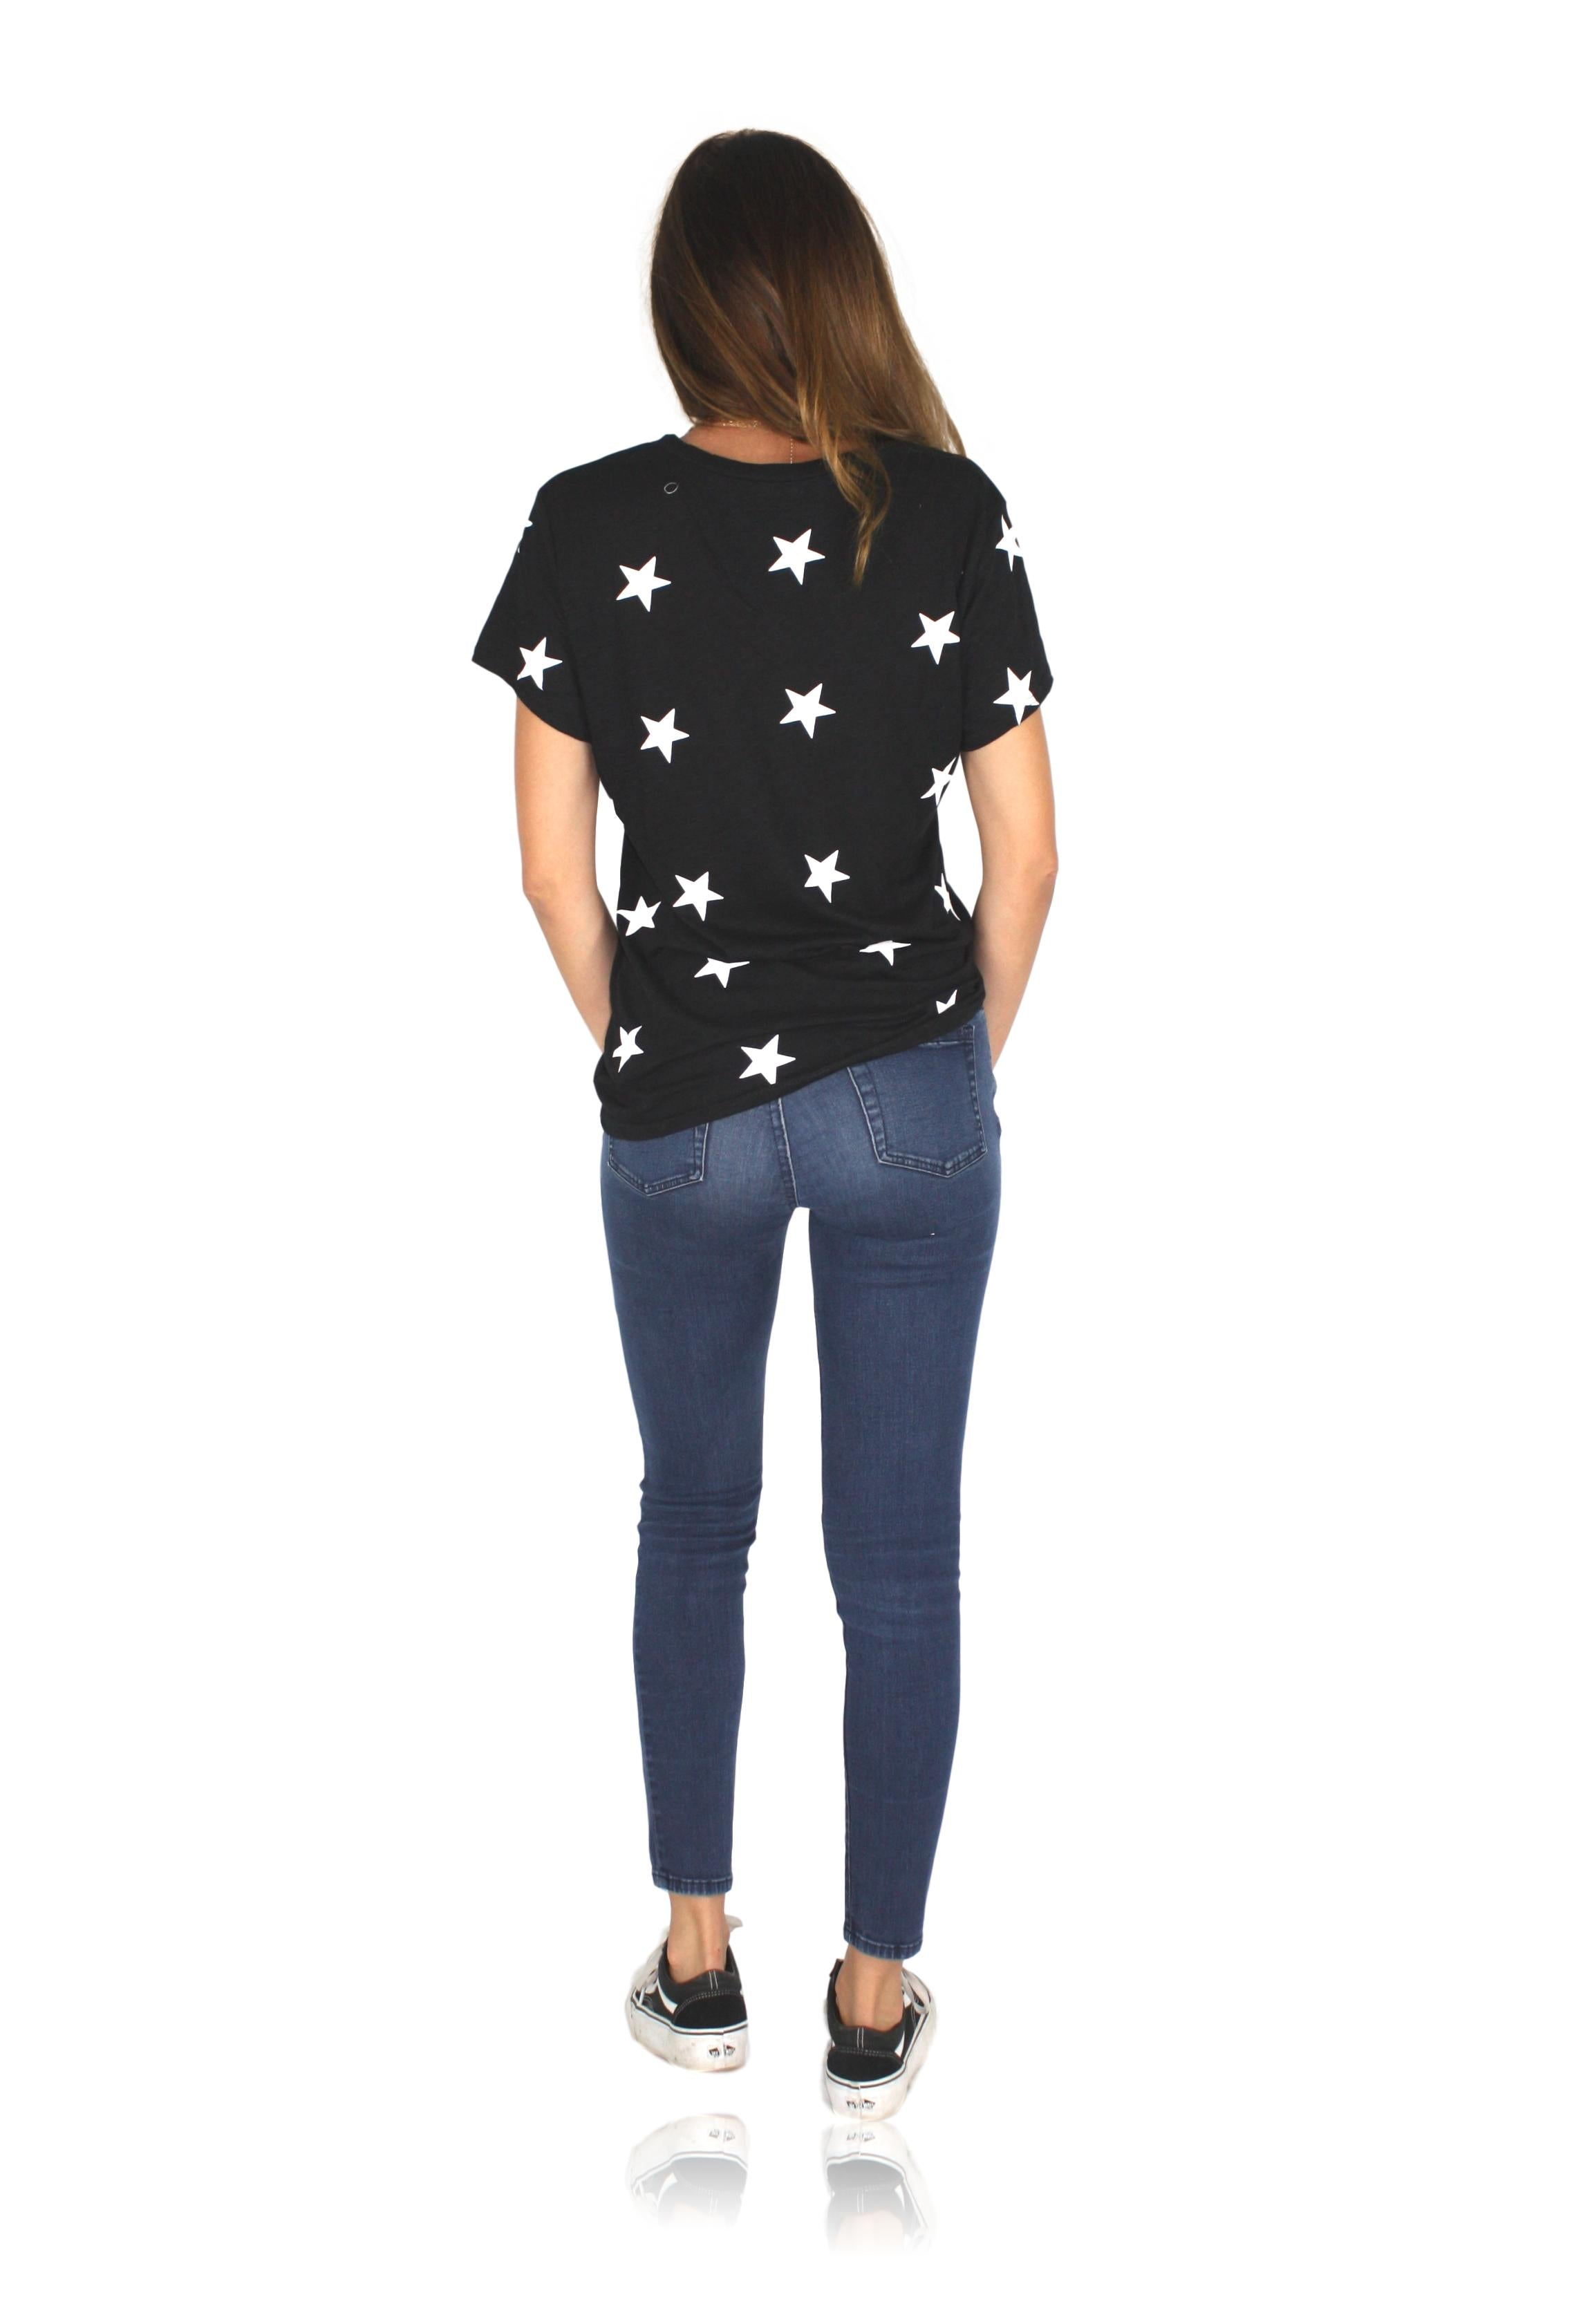 STARGAZER TEE IN BLACK